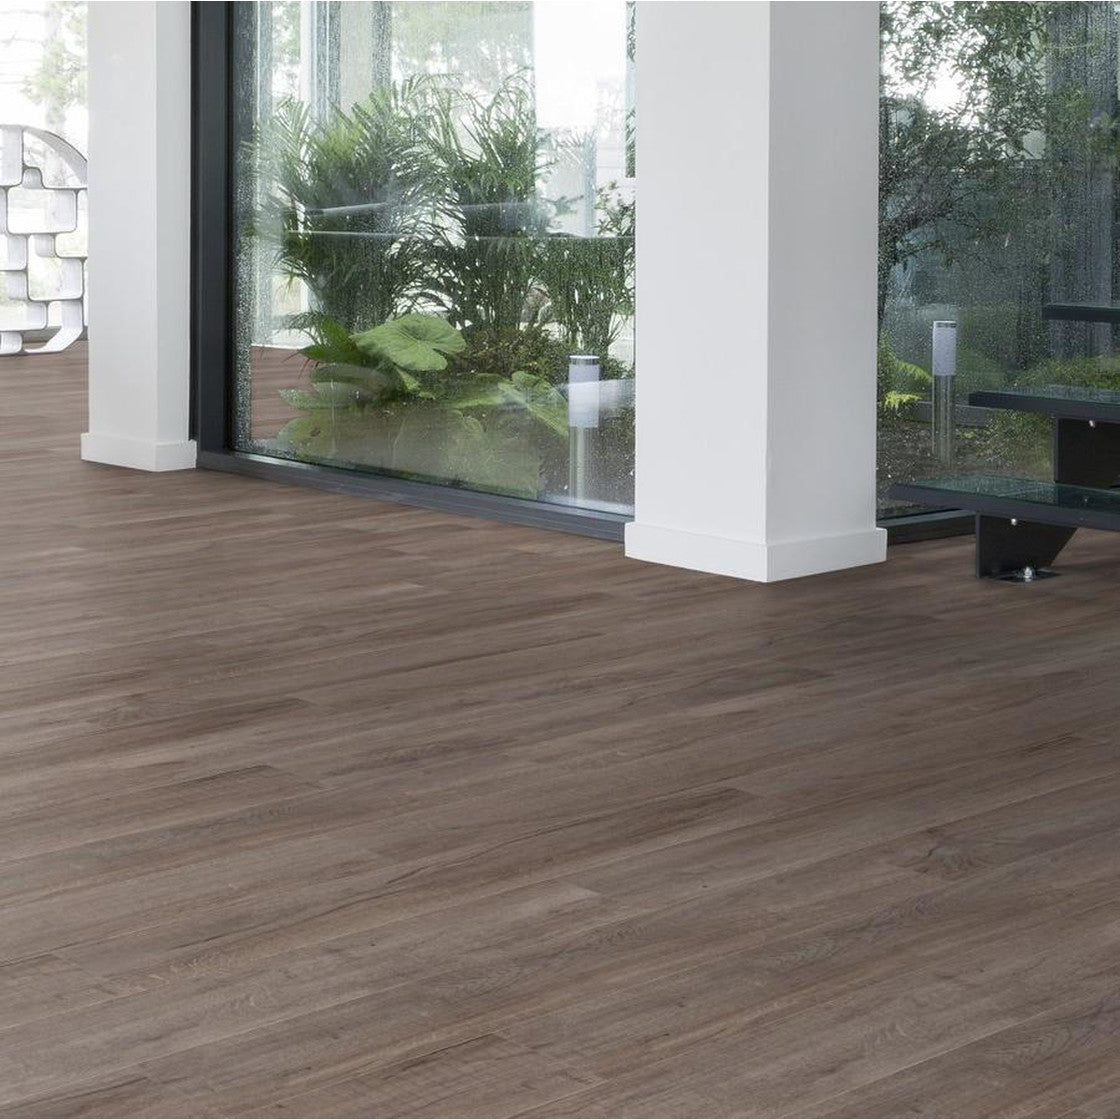 0847 Swiss Oak Smoked CREATION 30 CLIC BY GERFLOR / Pack de 2,12m²